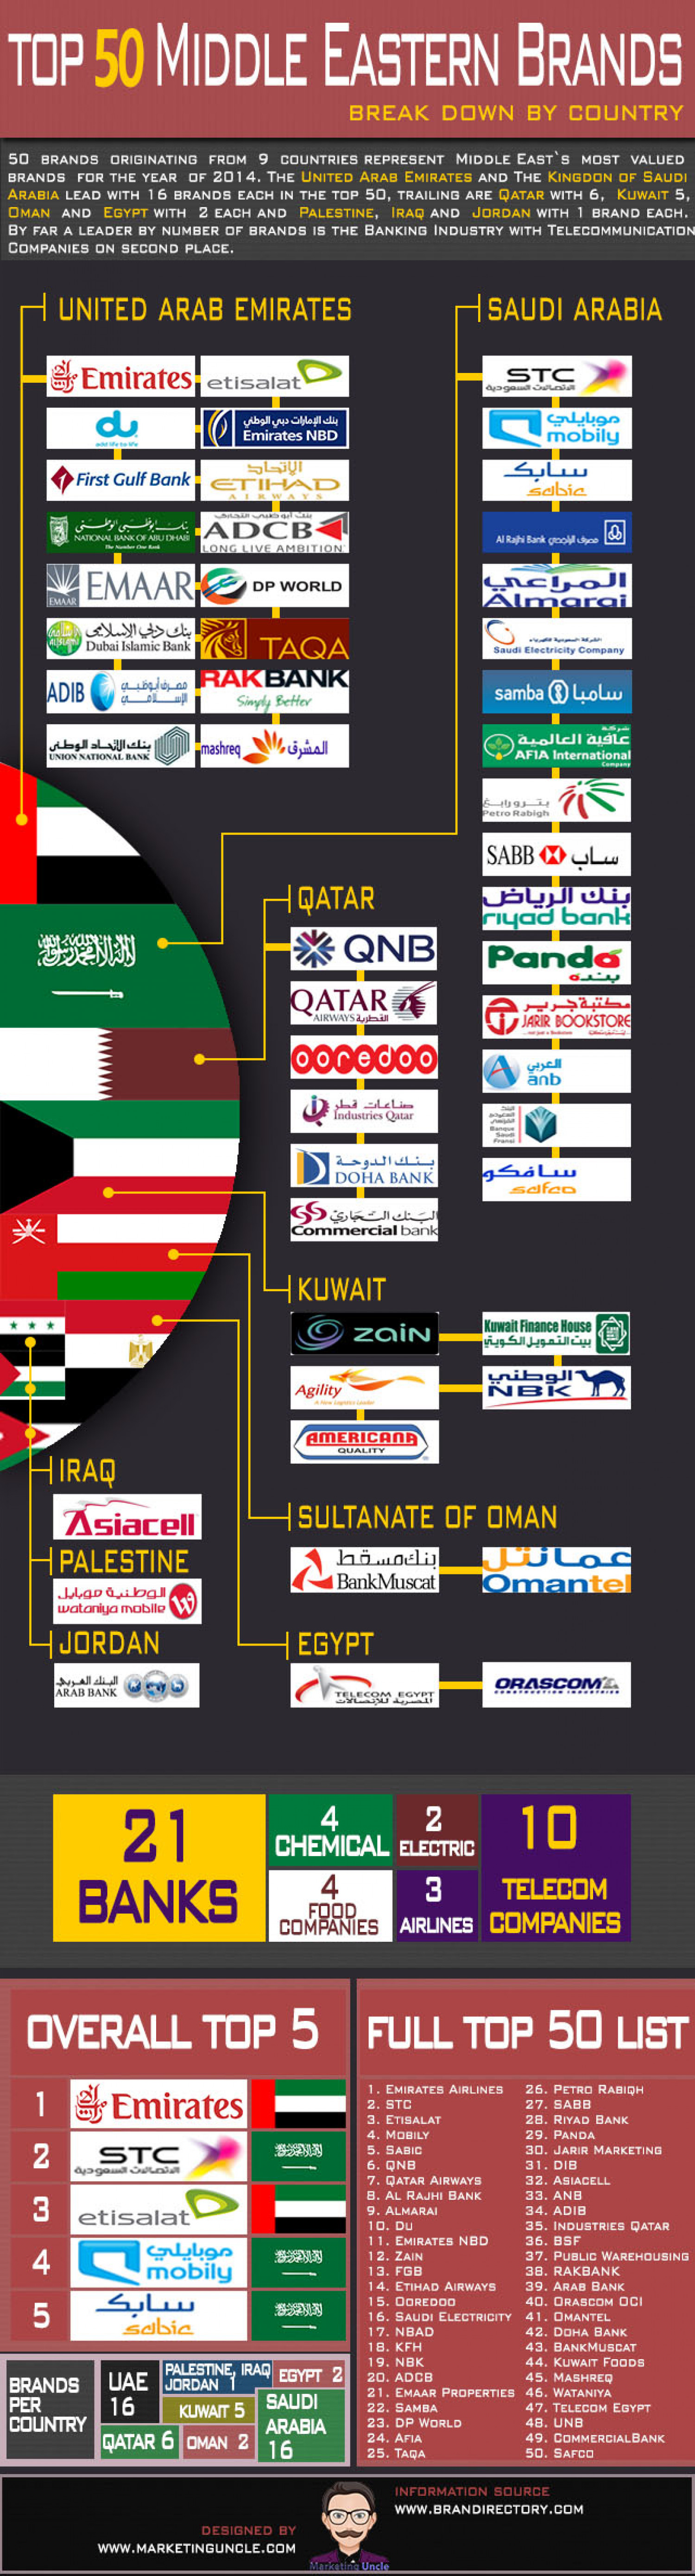 Top 50 Middle Eastern Brands Infographic